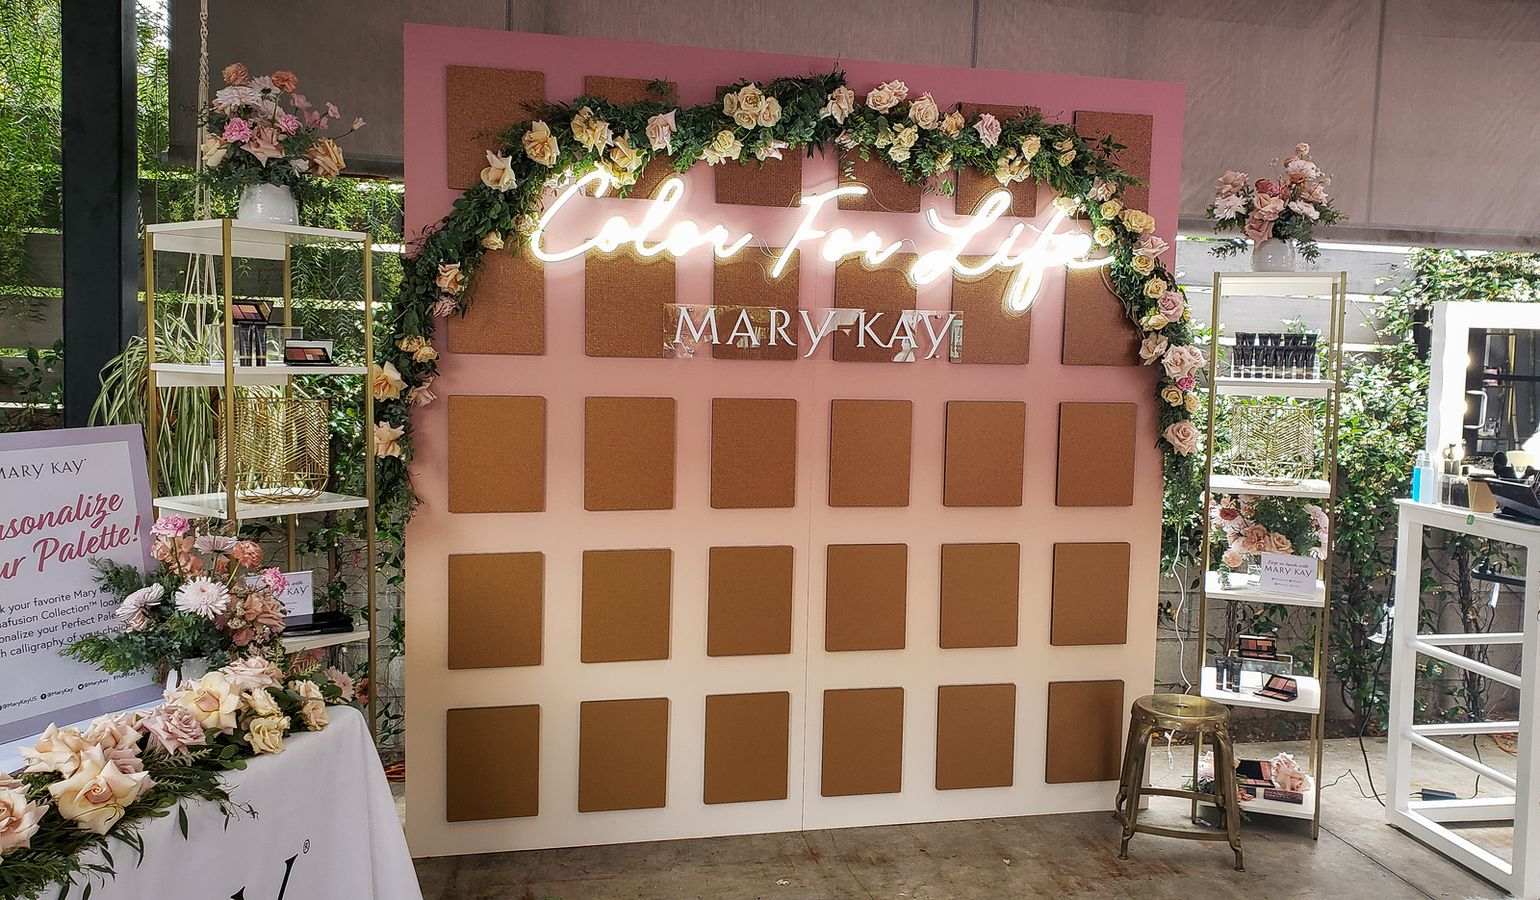 Mary Kay stand sign